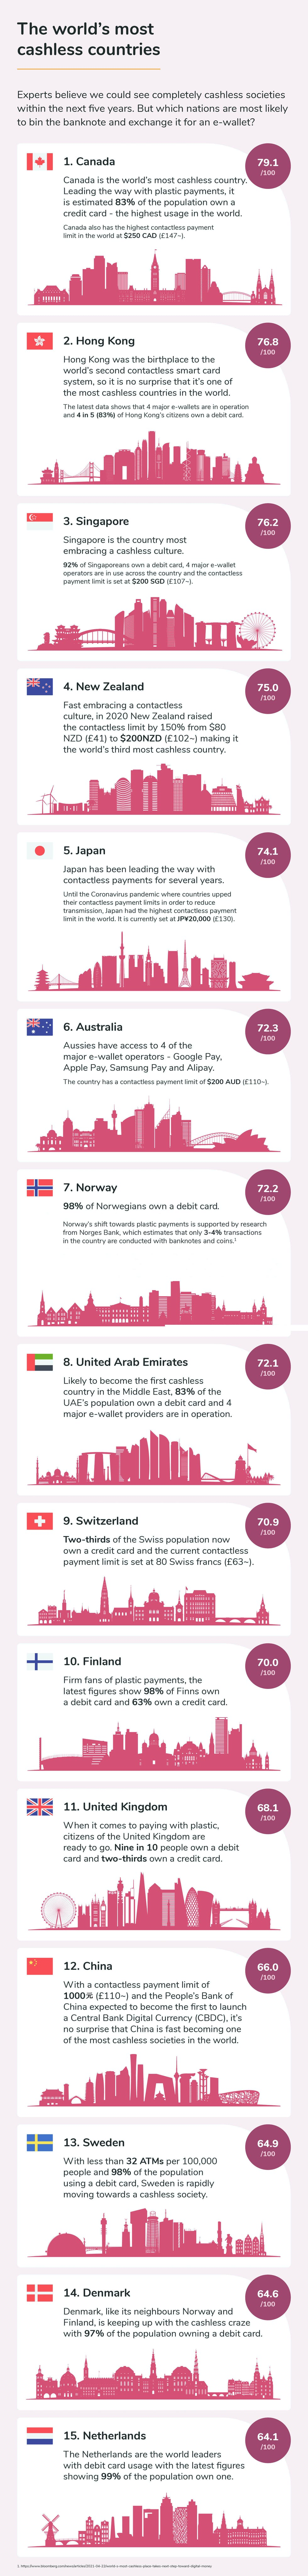 The most cashless economies in the world